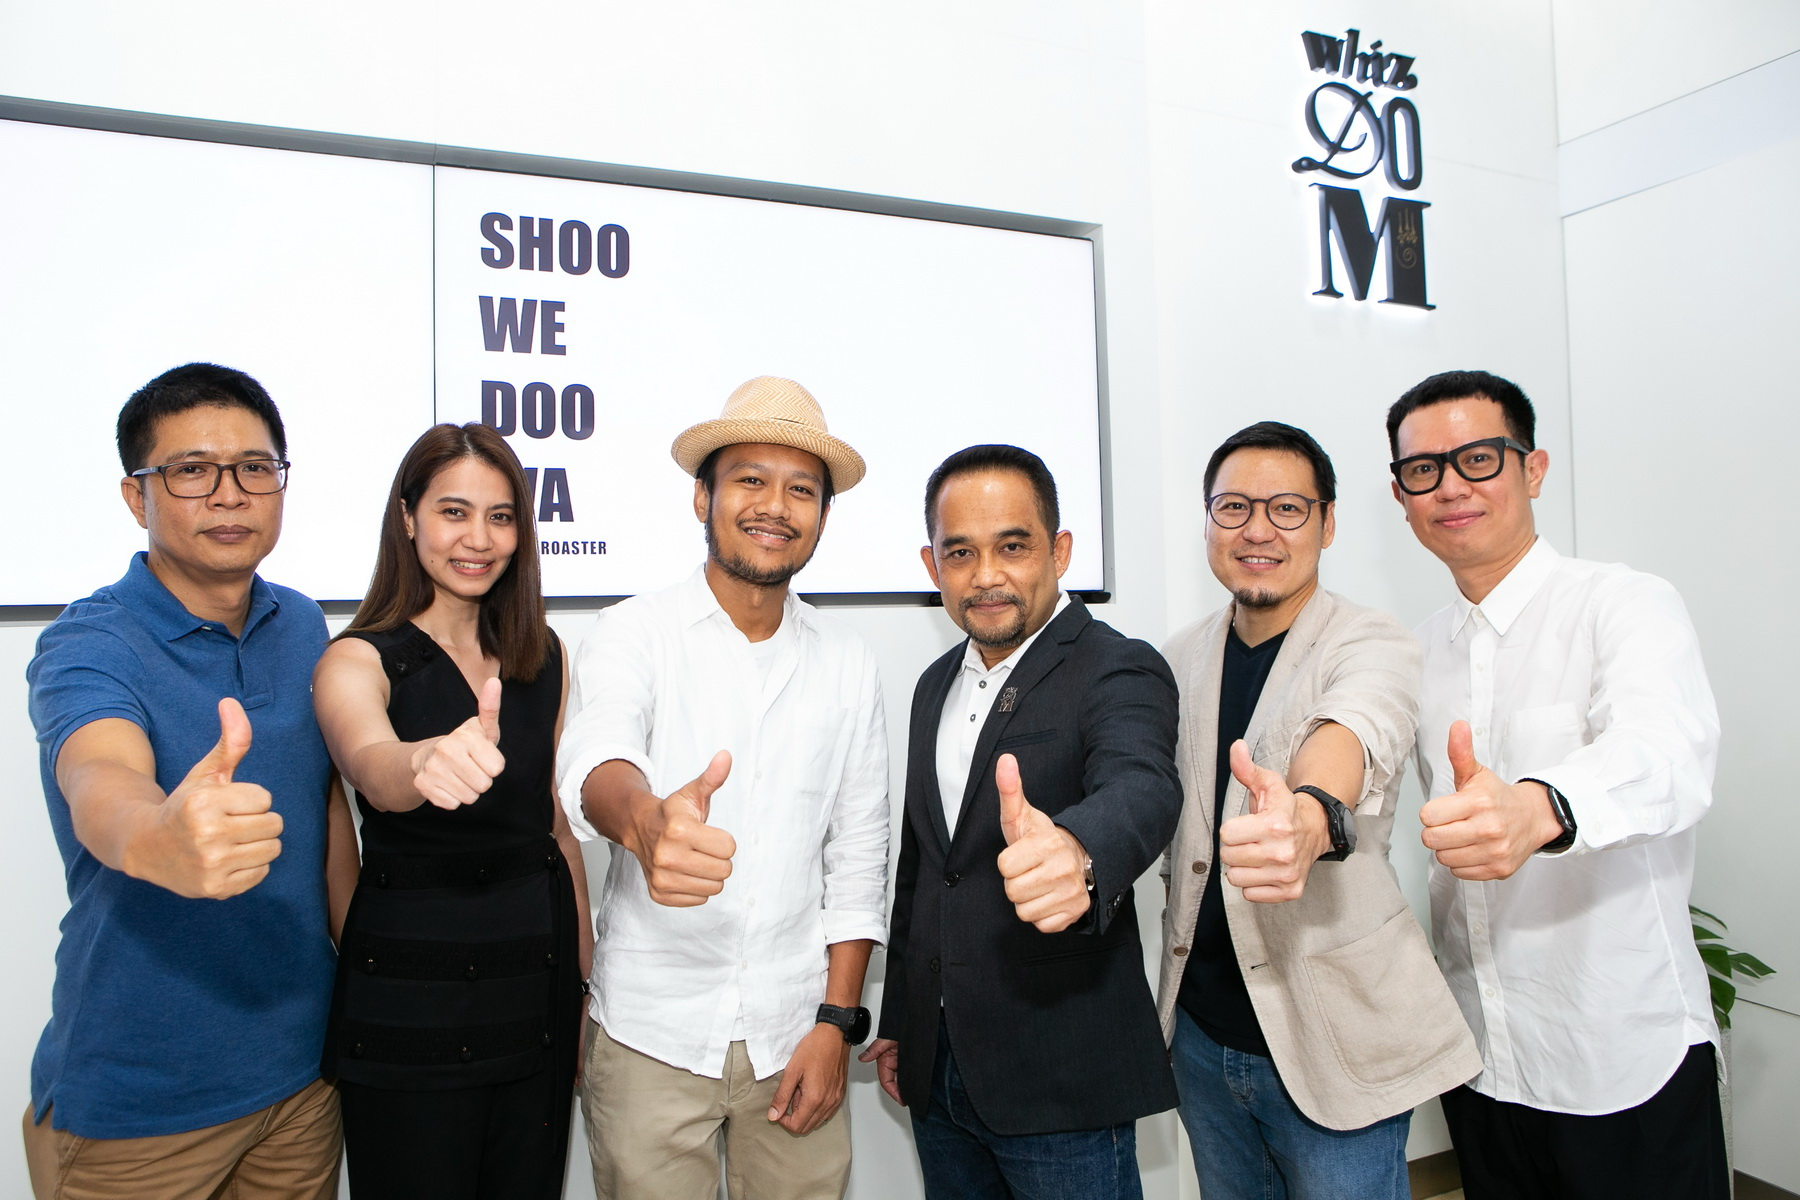 "From left: Mr. Pholsilp Boonmark, Senior Vice President of Project Development, MQDC, Ms. Ruedeekorn Onsawat, Vice President of Marketing and Branding, MQDC, Mr. Numchok Thanadram, Founder of the ""Shoo We Doo Wa"" coffee shop, Mr. Assada Kaeokhiao, President of MQDC's Whizdom brand, Mr. Anuwat Jiropaskosol, Vice President of Project Development, MQDC, and Mr. Athiwat Yowdhusit, Vice President of Marketing and Branding, MQDC."